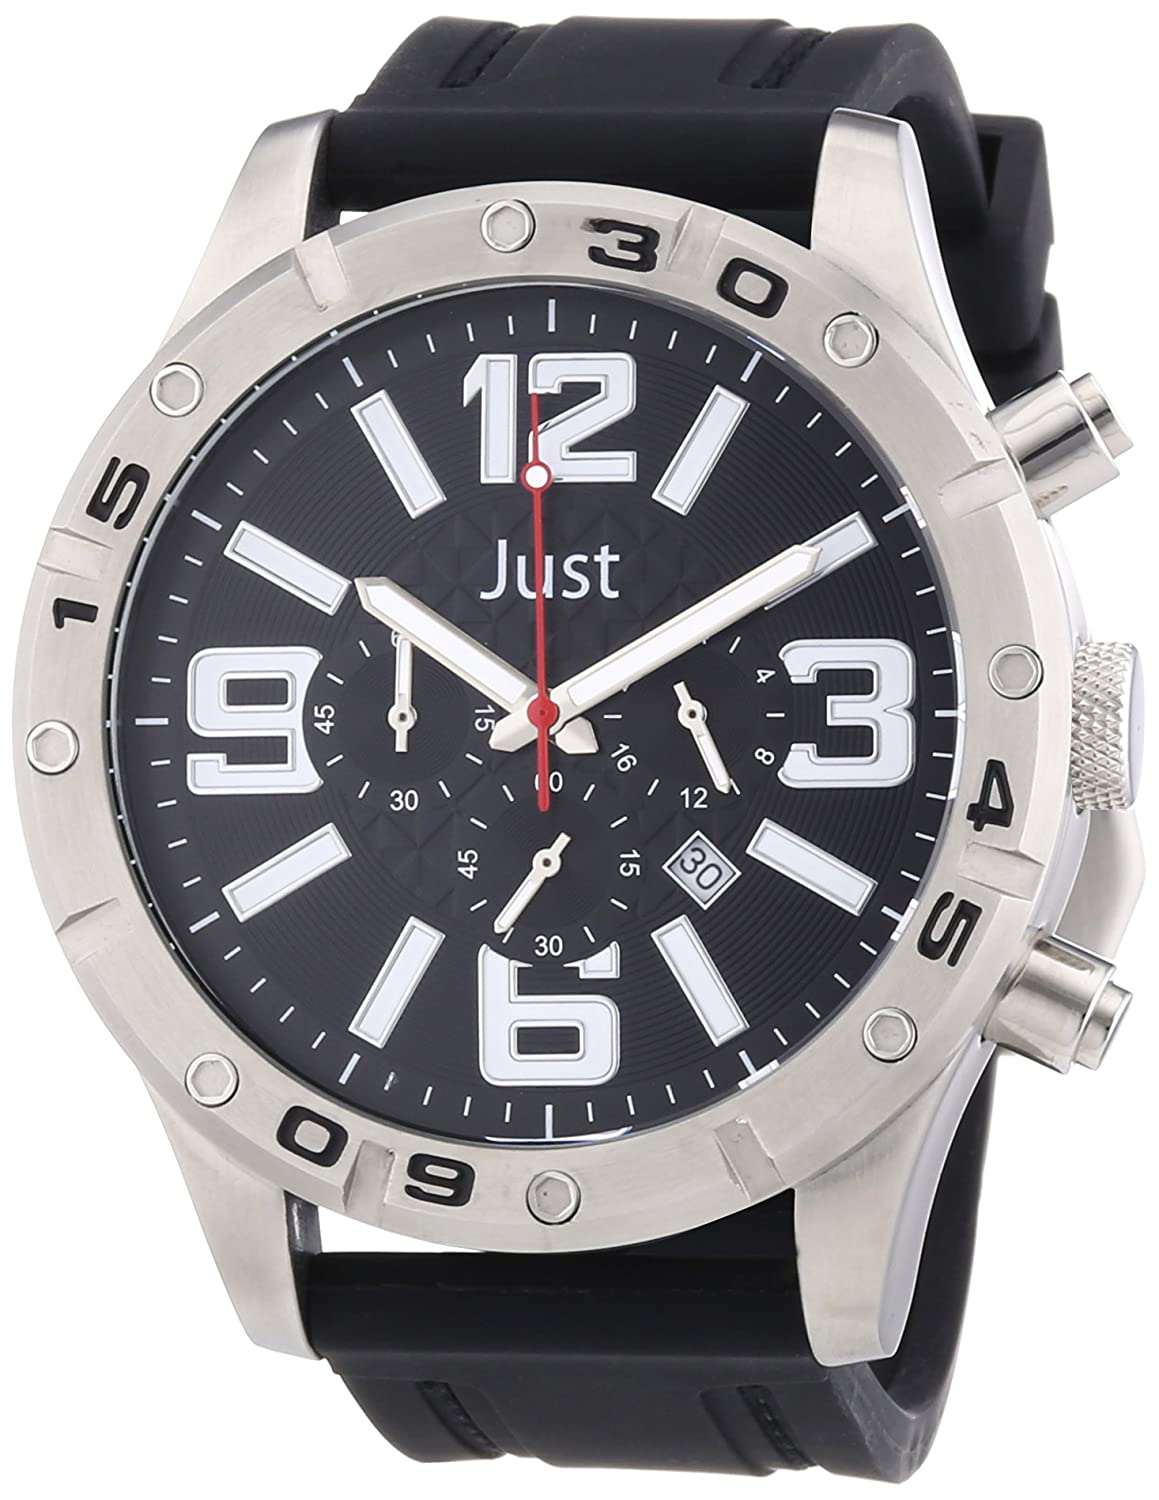 Just Watches Herren-Armbanduhr XL Analog Quarz Kautschuk 48-S3978-BK